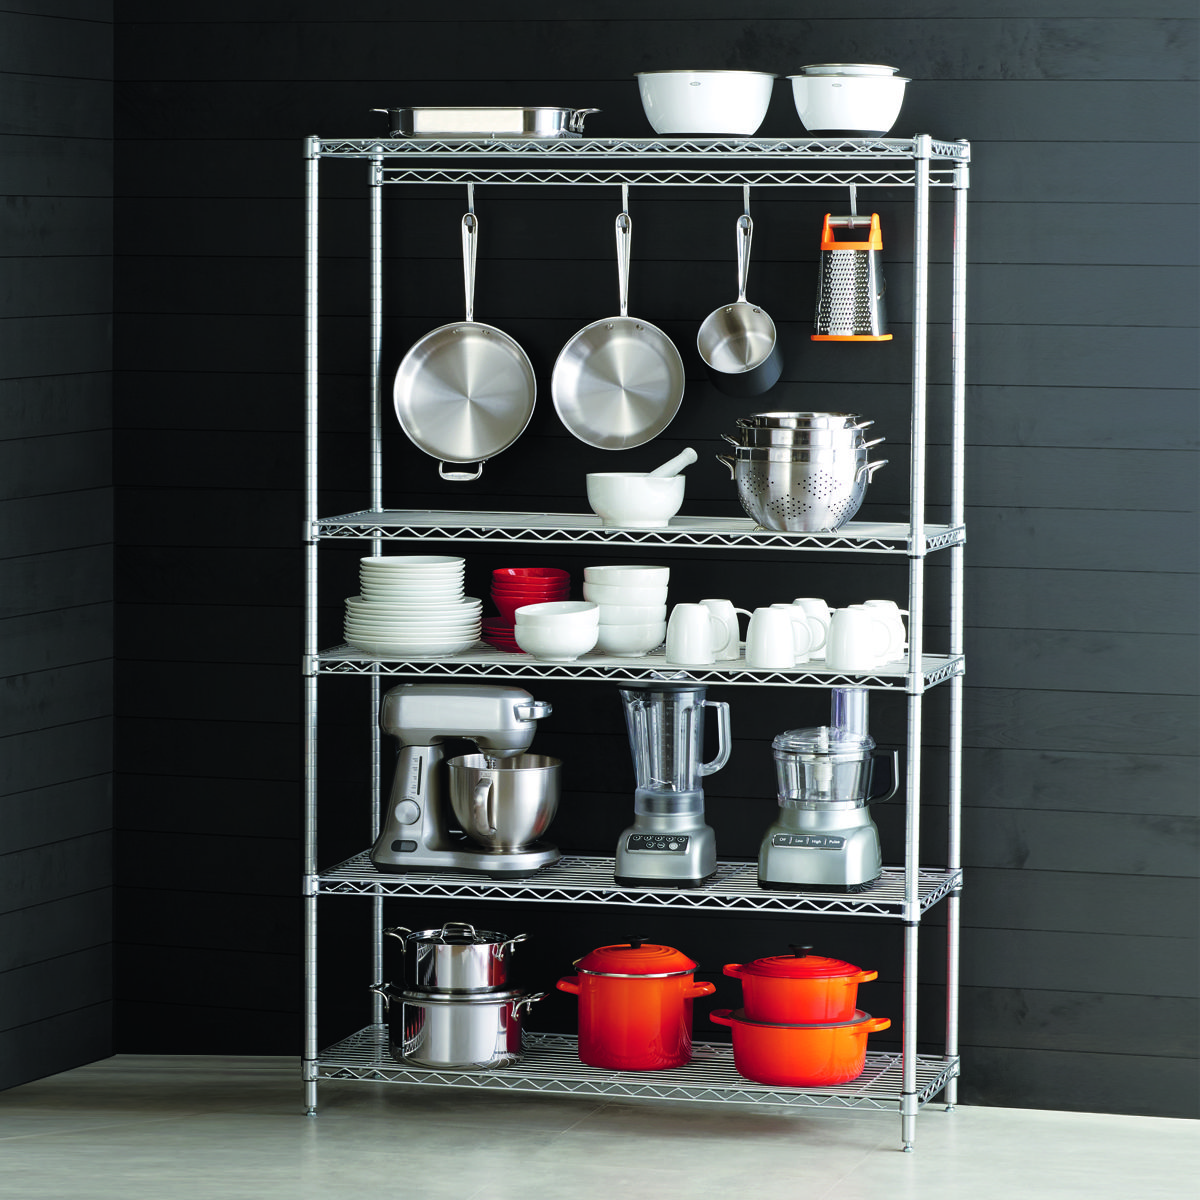 InterMetro Kitchen Cookware Storage in 2019 Kitchen